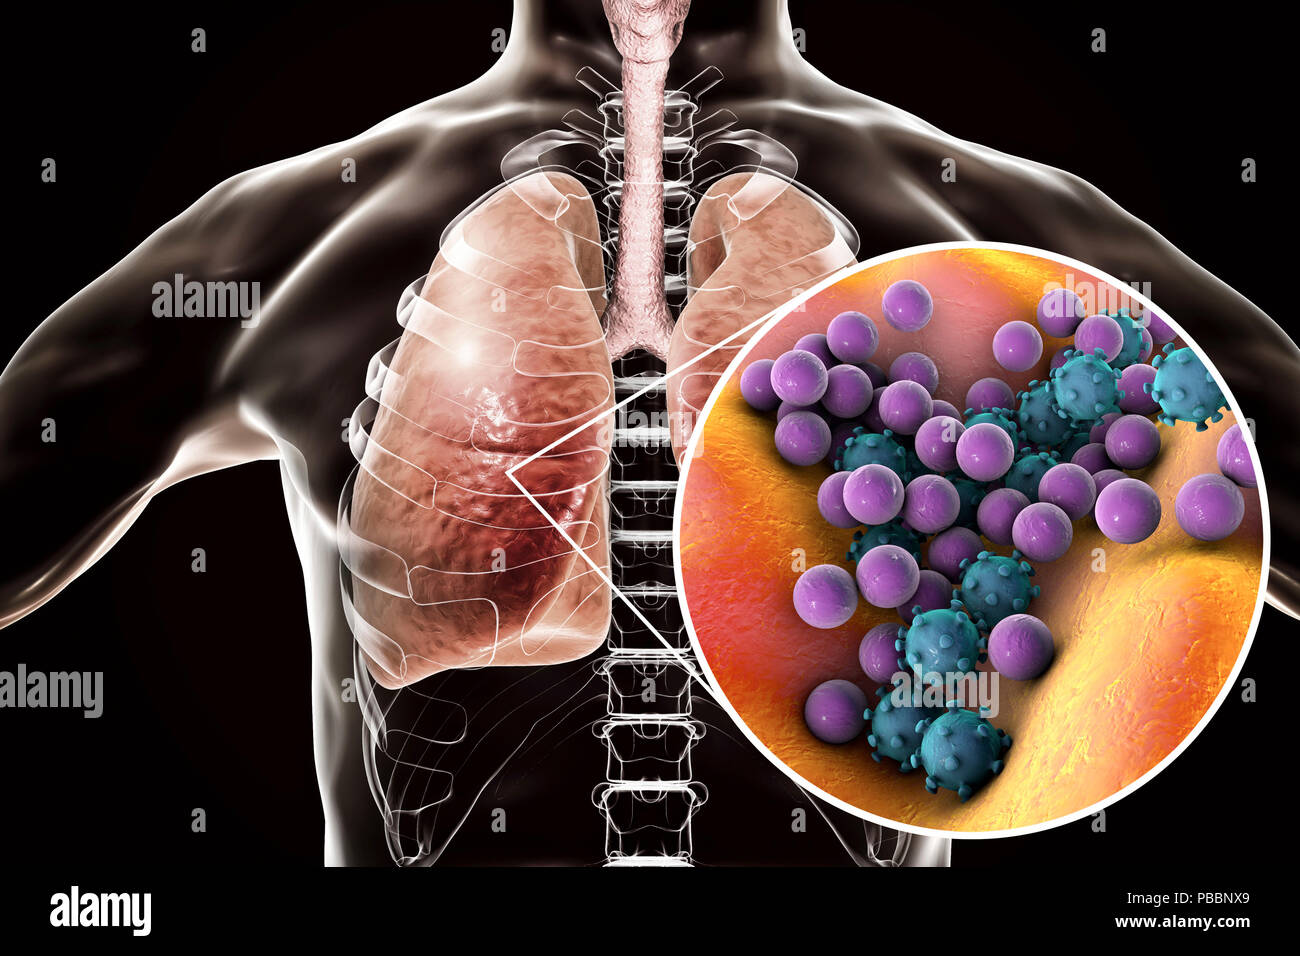 Pneumonia of mixed etiology, conceptual illustration. Human lungs and close-up view of bacteria and viruses, two of the causative agents of pneumonia. - Stock Image